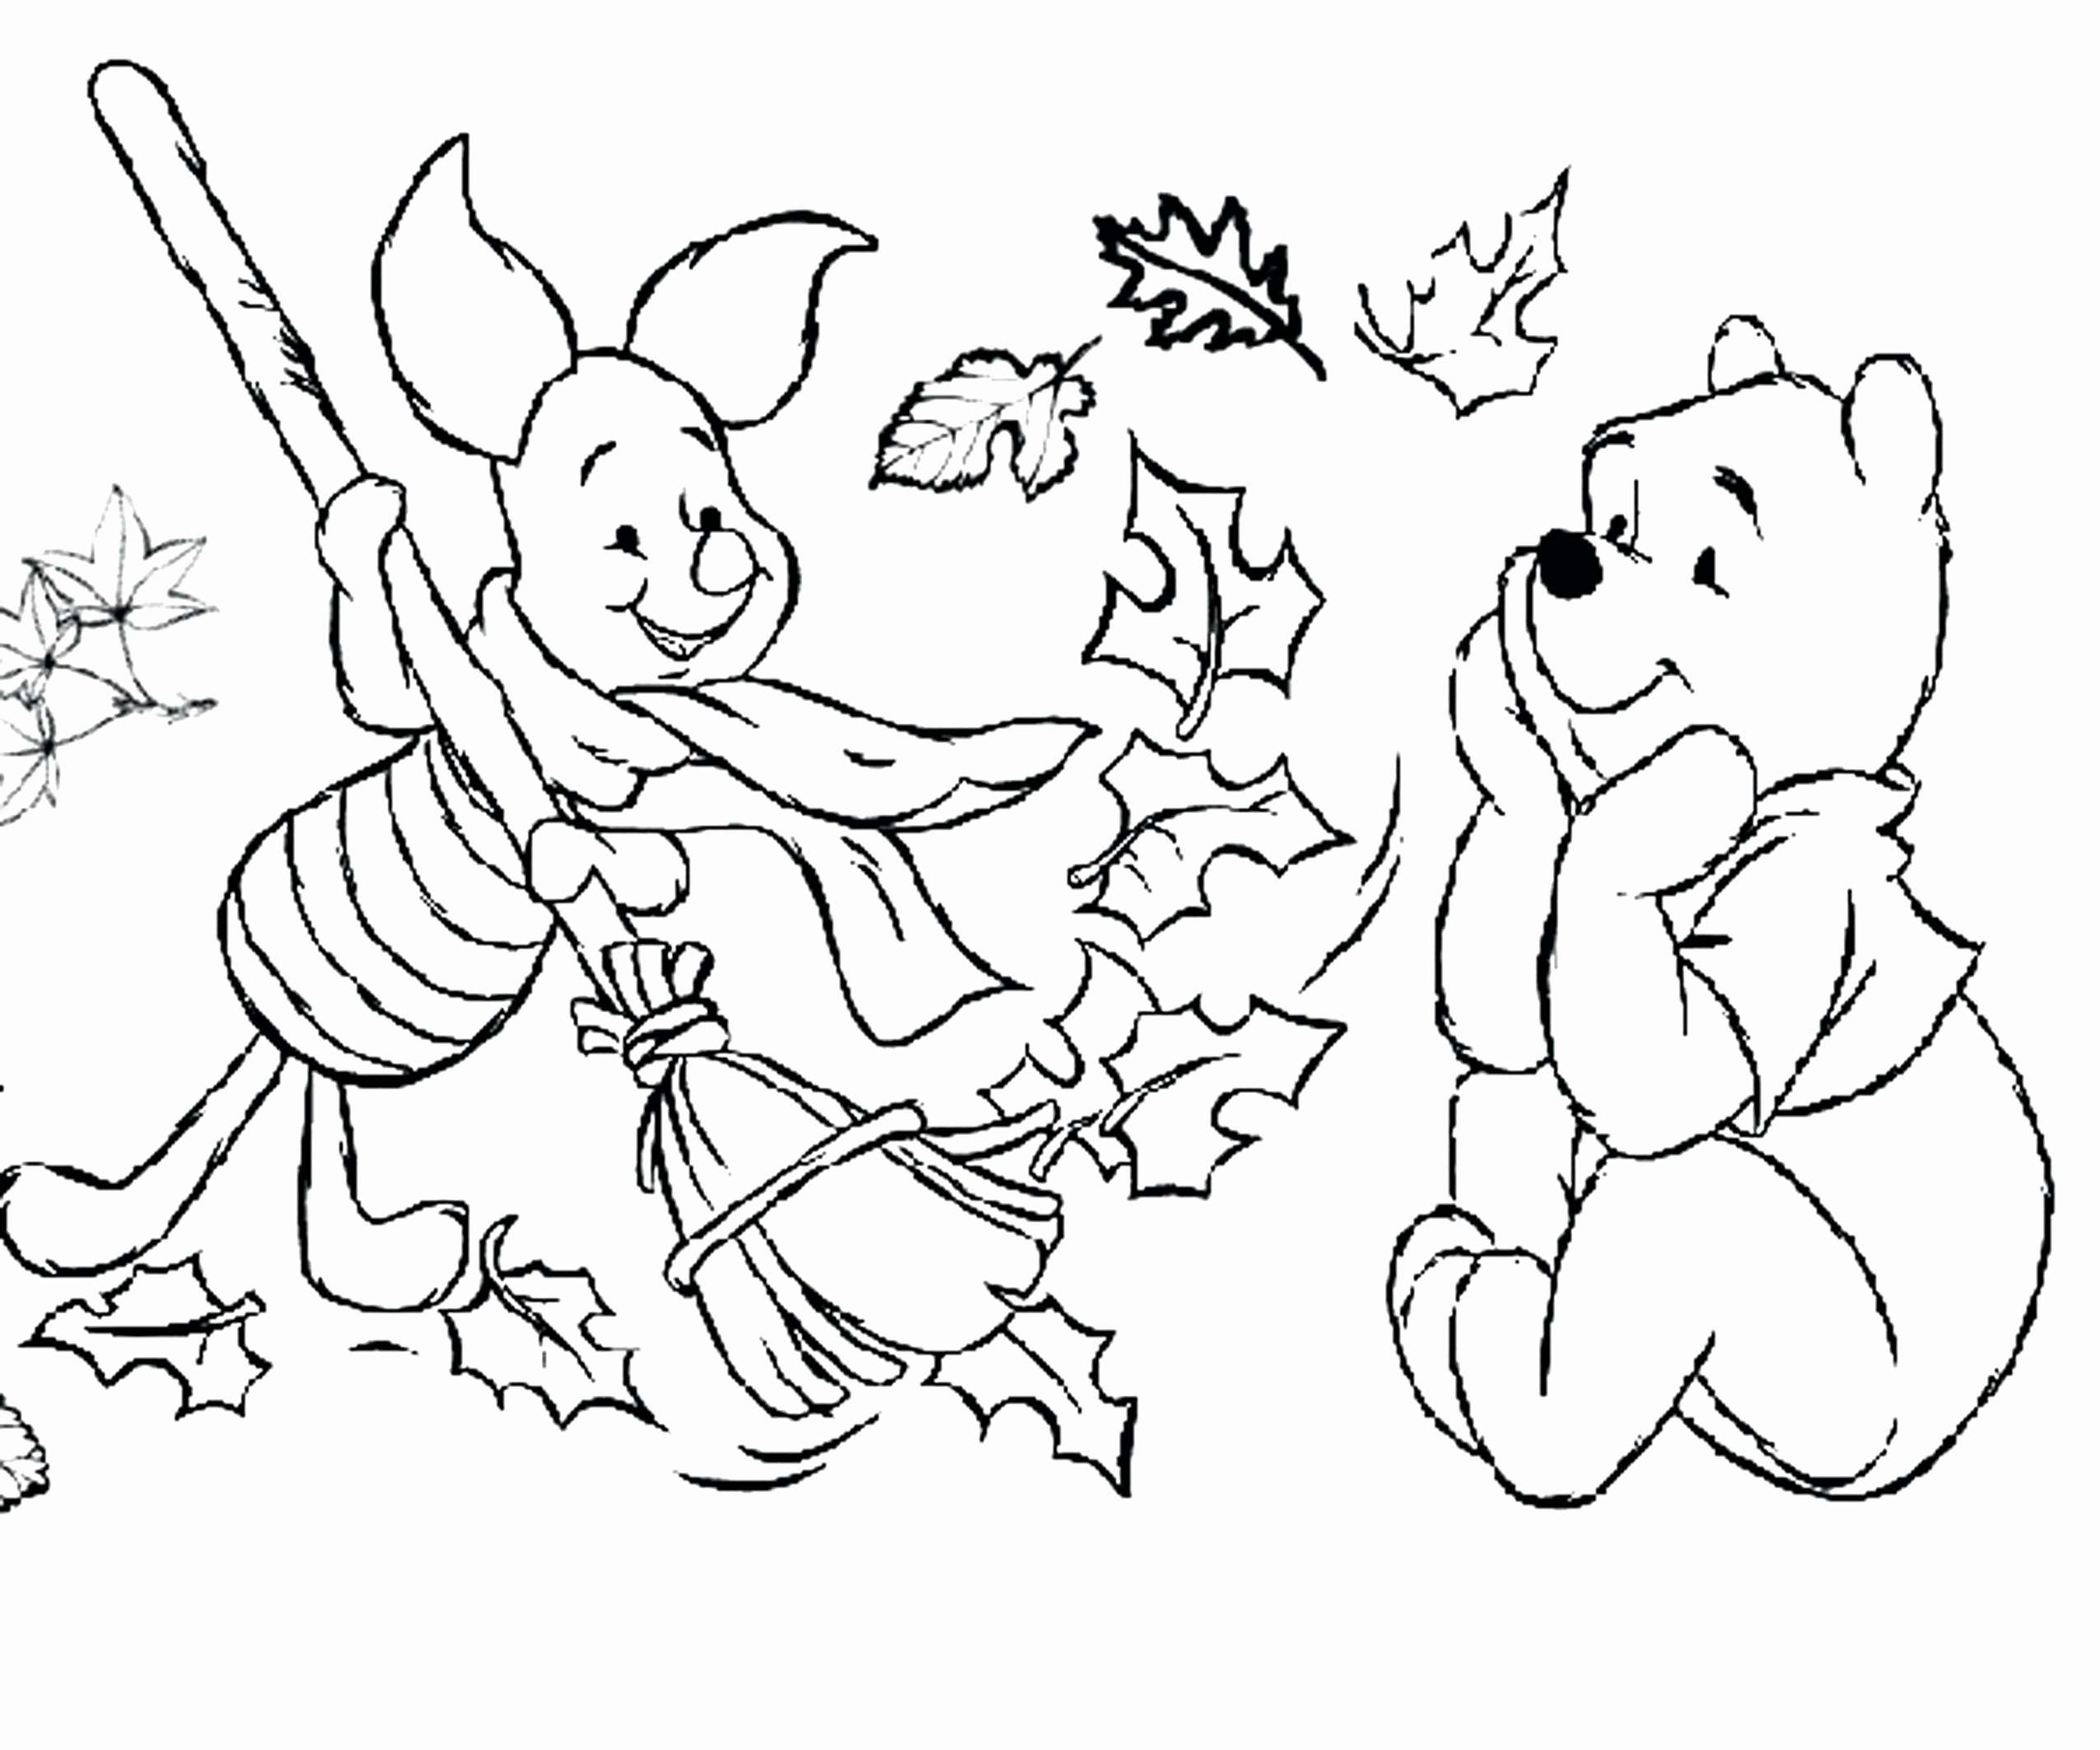 Italy Christmas Coloring Pages With Free Printable For Children That You